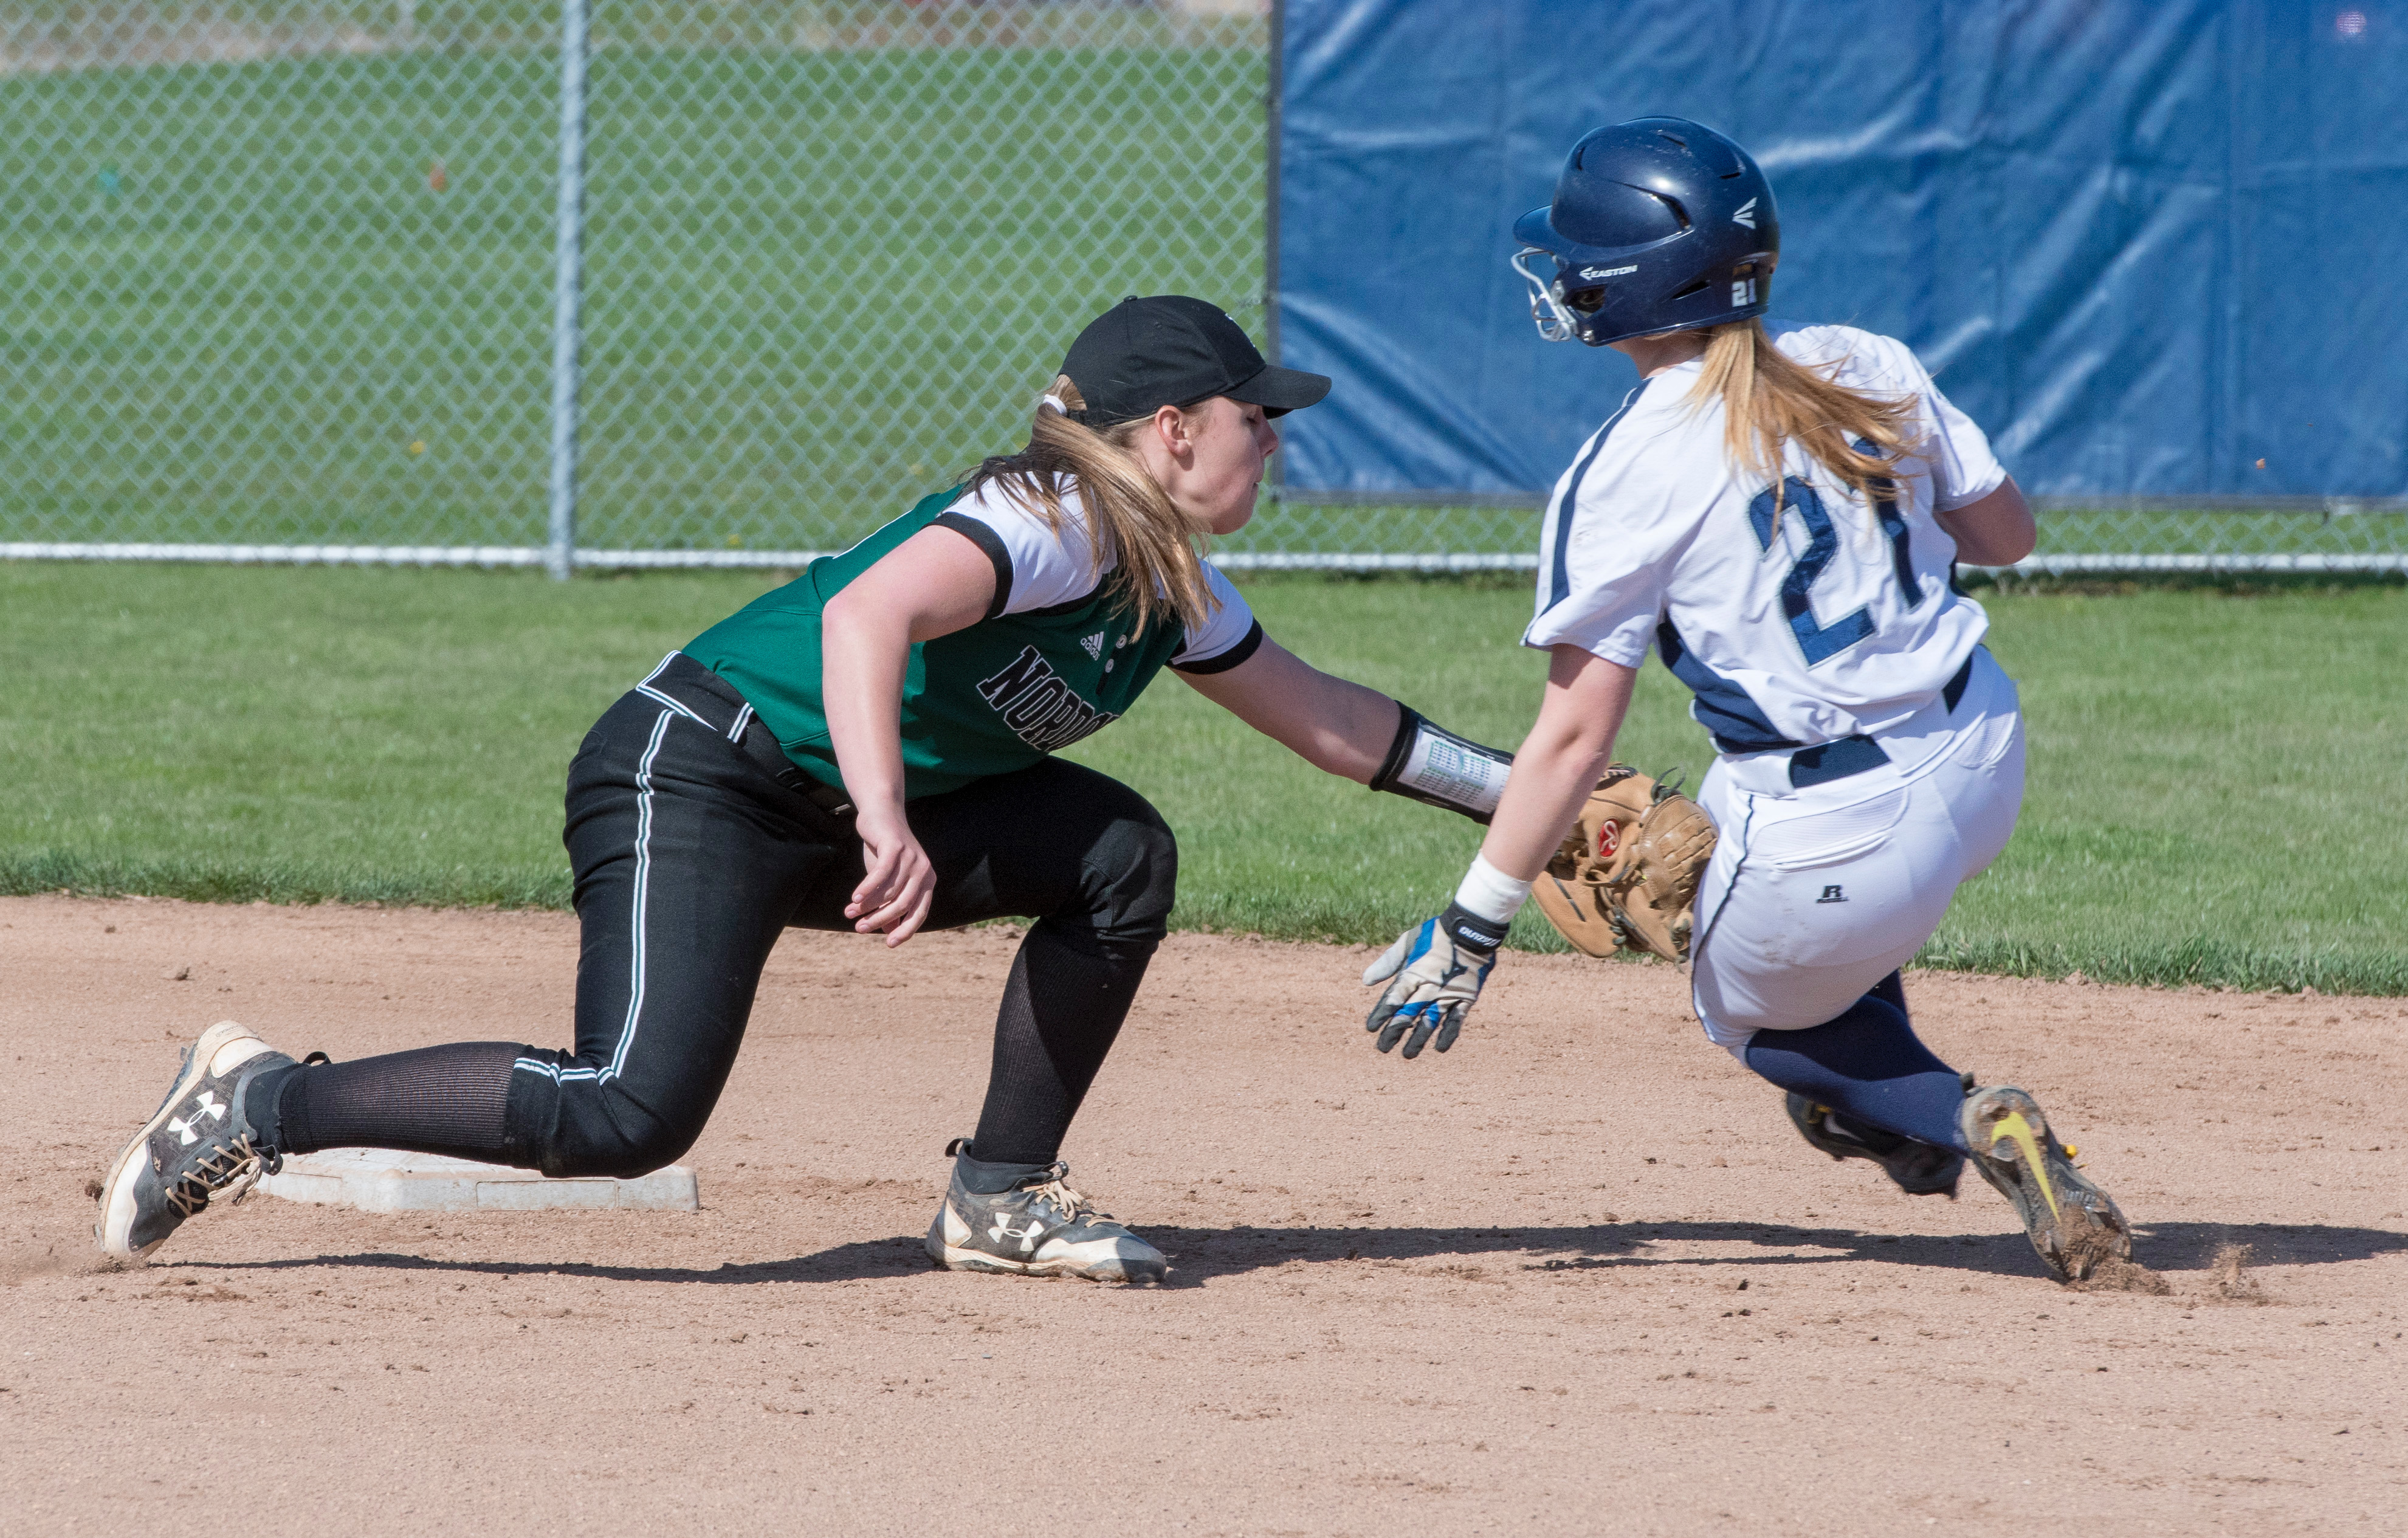 Nordonia Softball: Hudson Captures Lead Early To Defeat Nordonia Knights Varsity